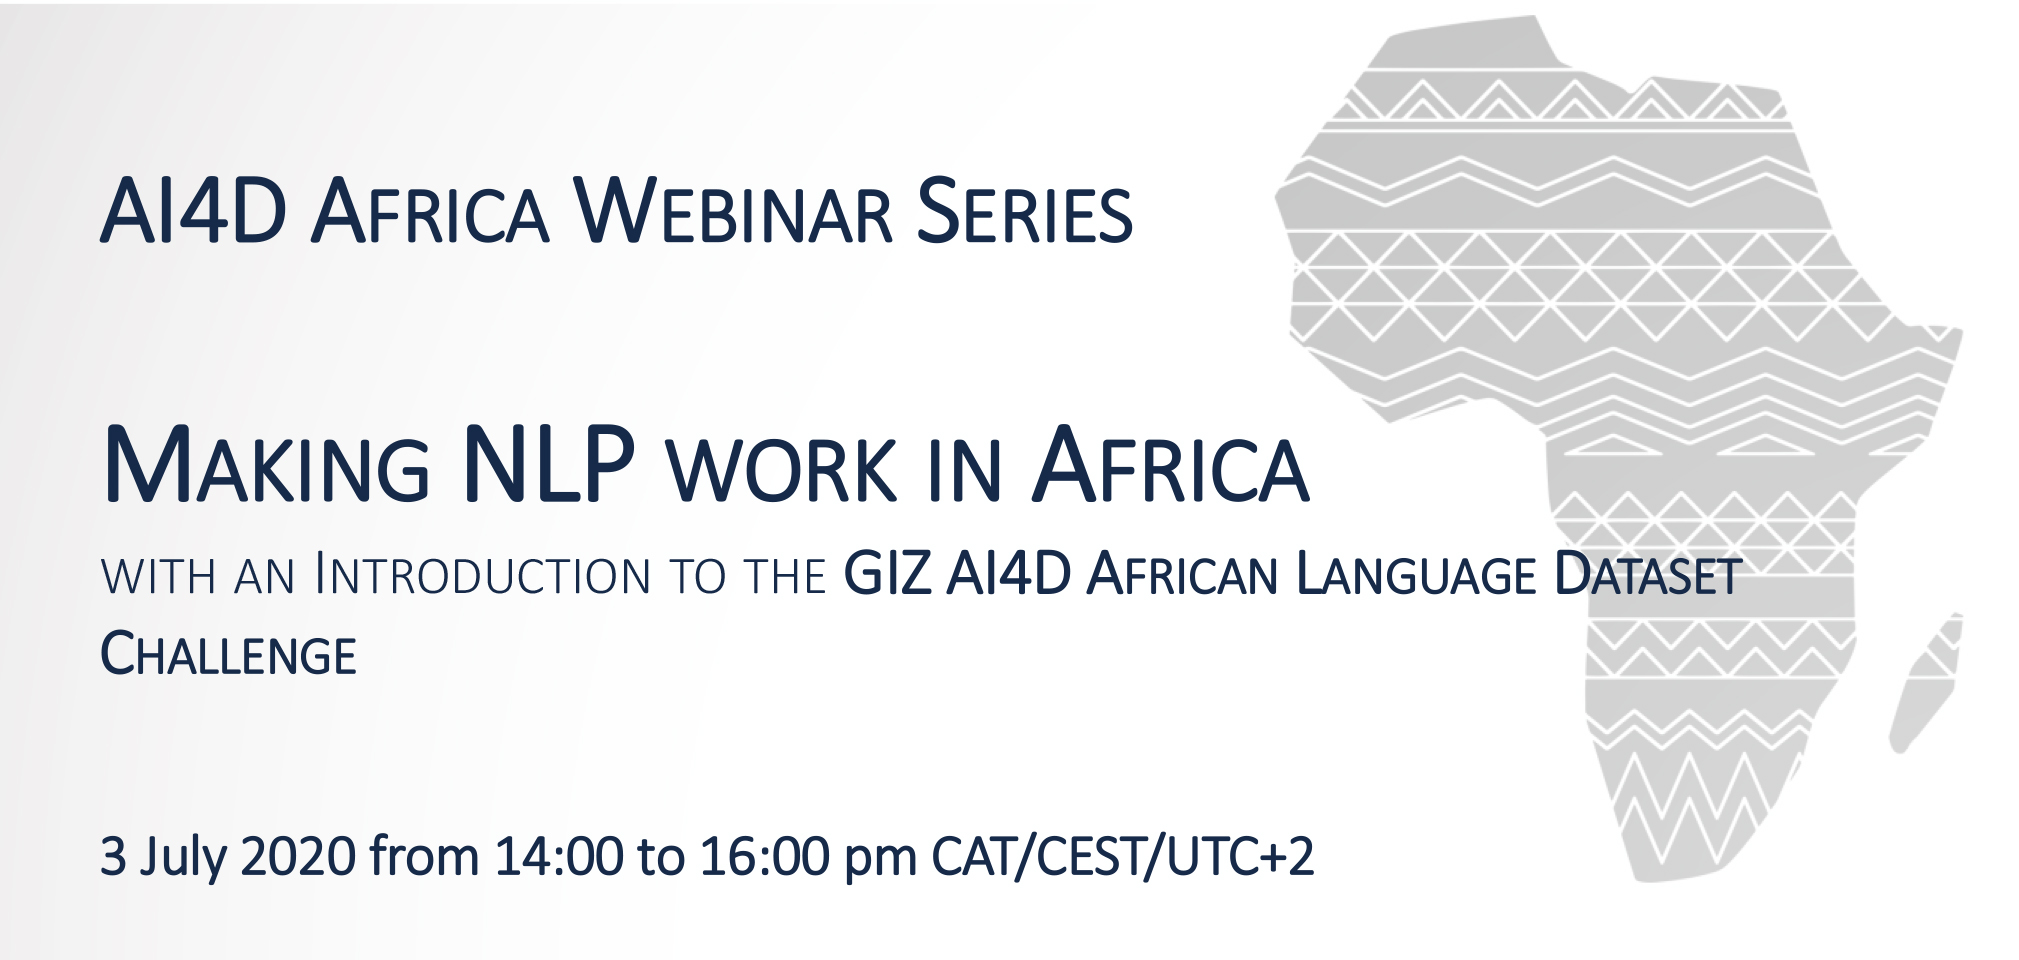 Join us for the kickoff session of the A4D Africa webinar series